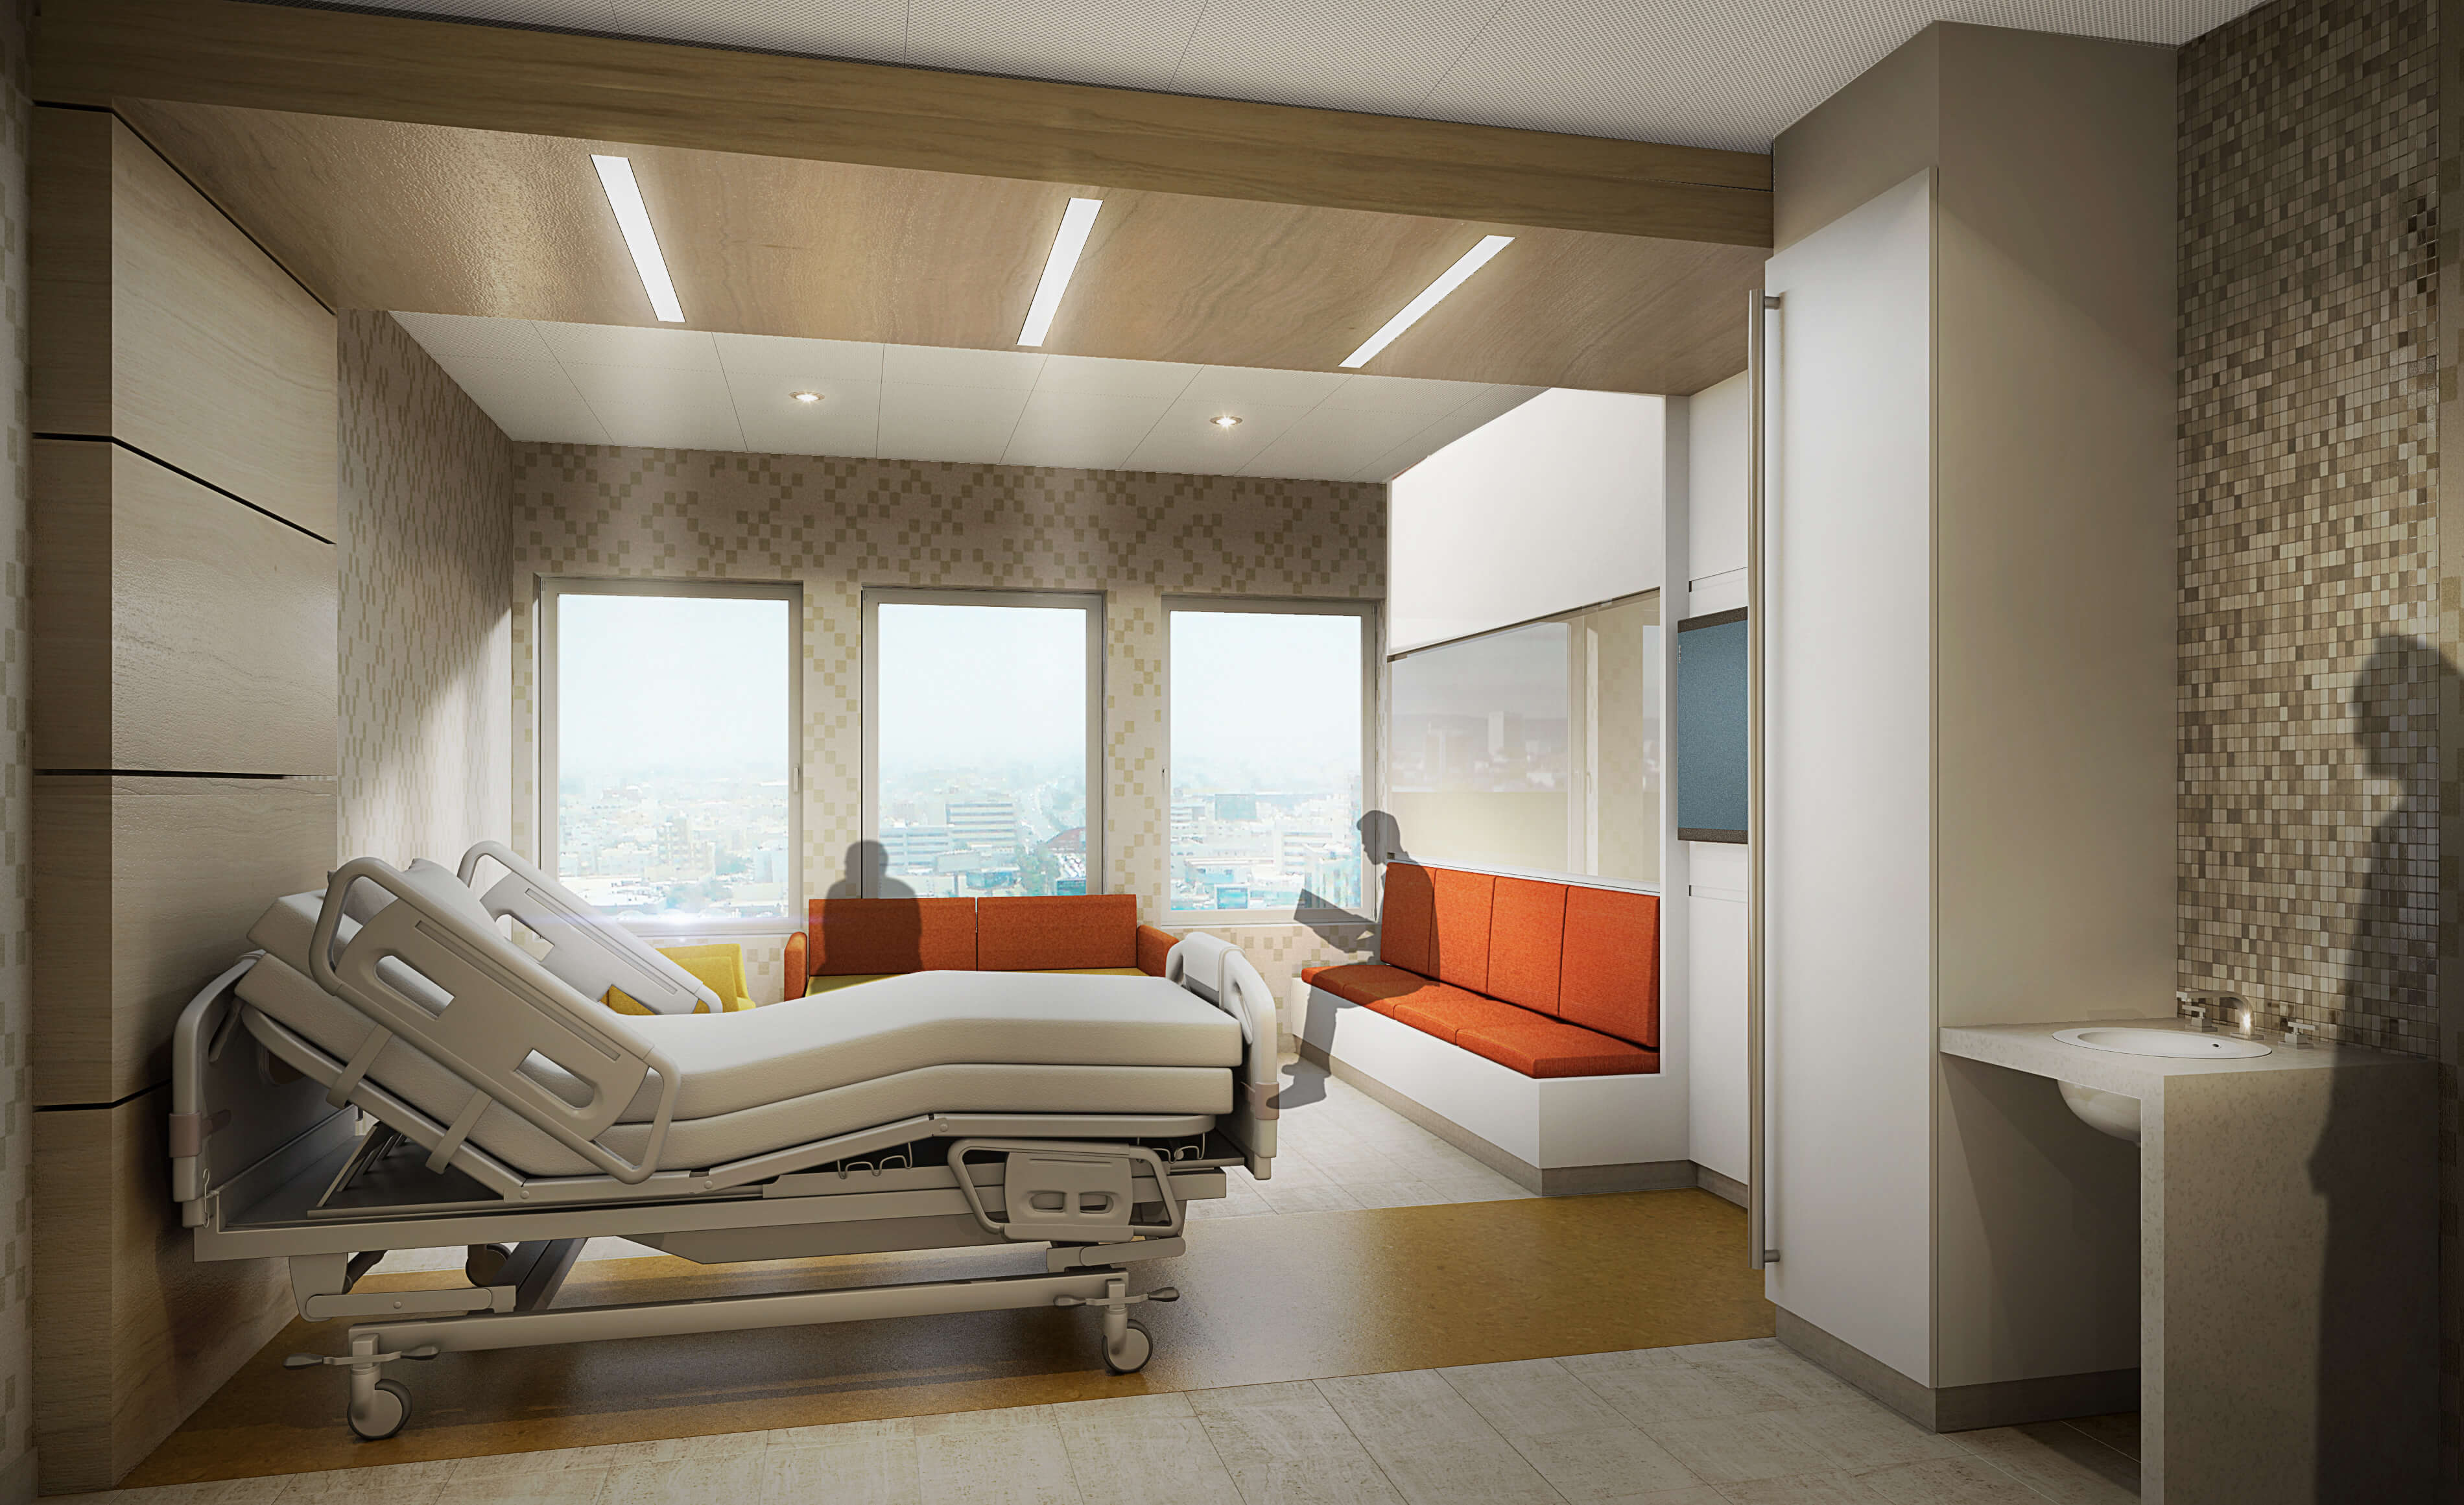 11-1-rehab-inpatient-room-rendering